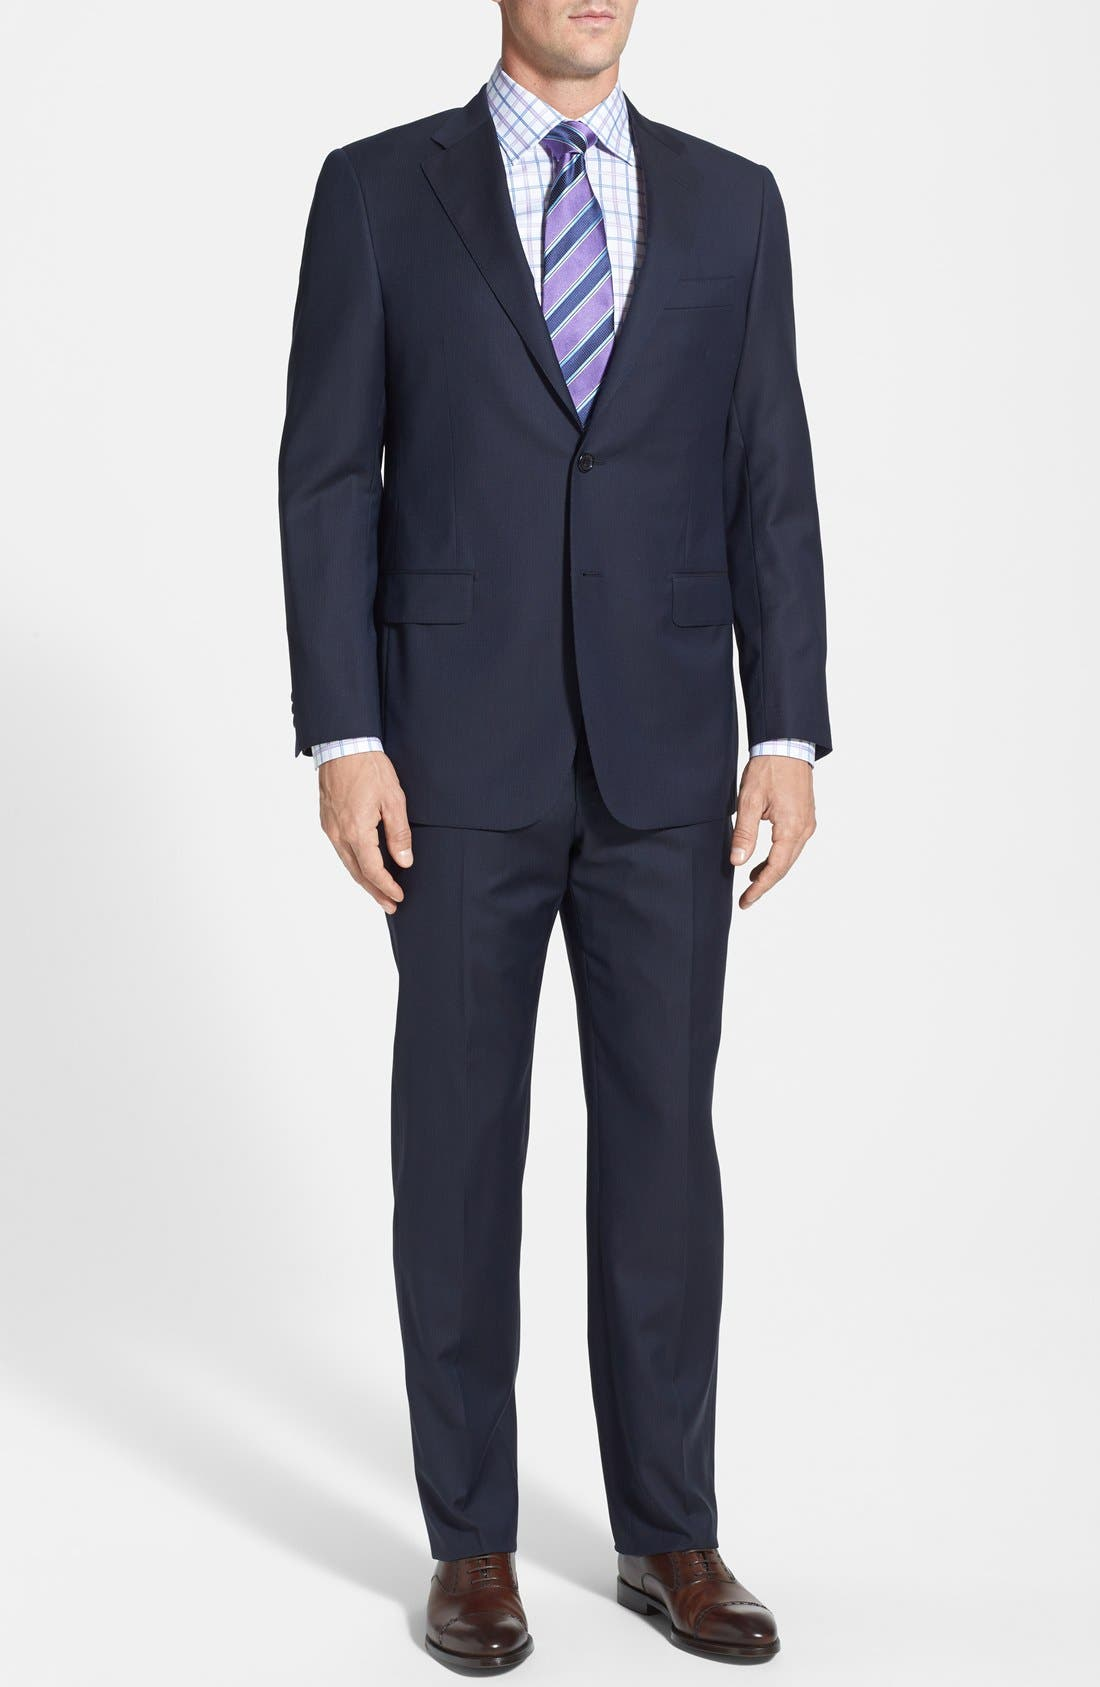 Main Image - Hickey Freeman Classic Fit Navy Stripe Suit